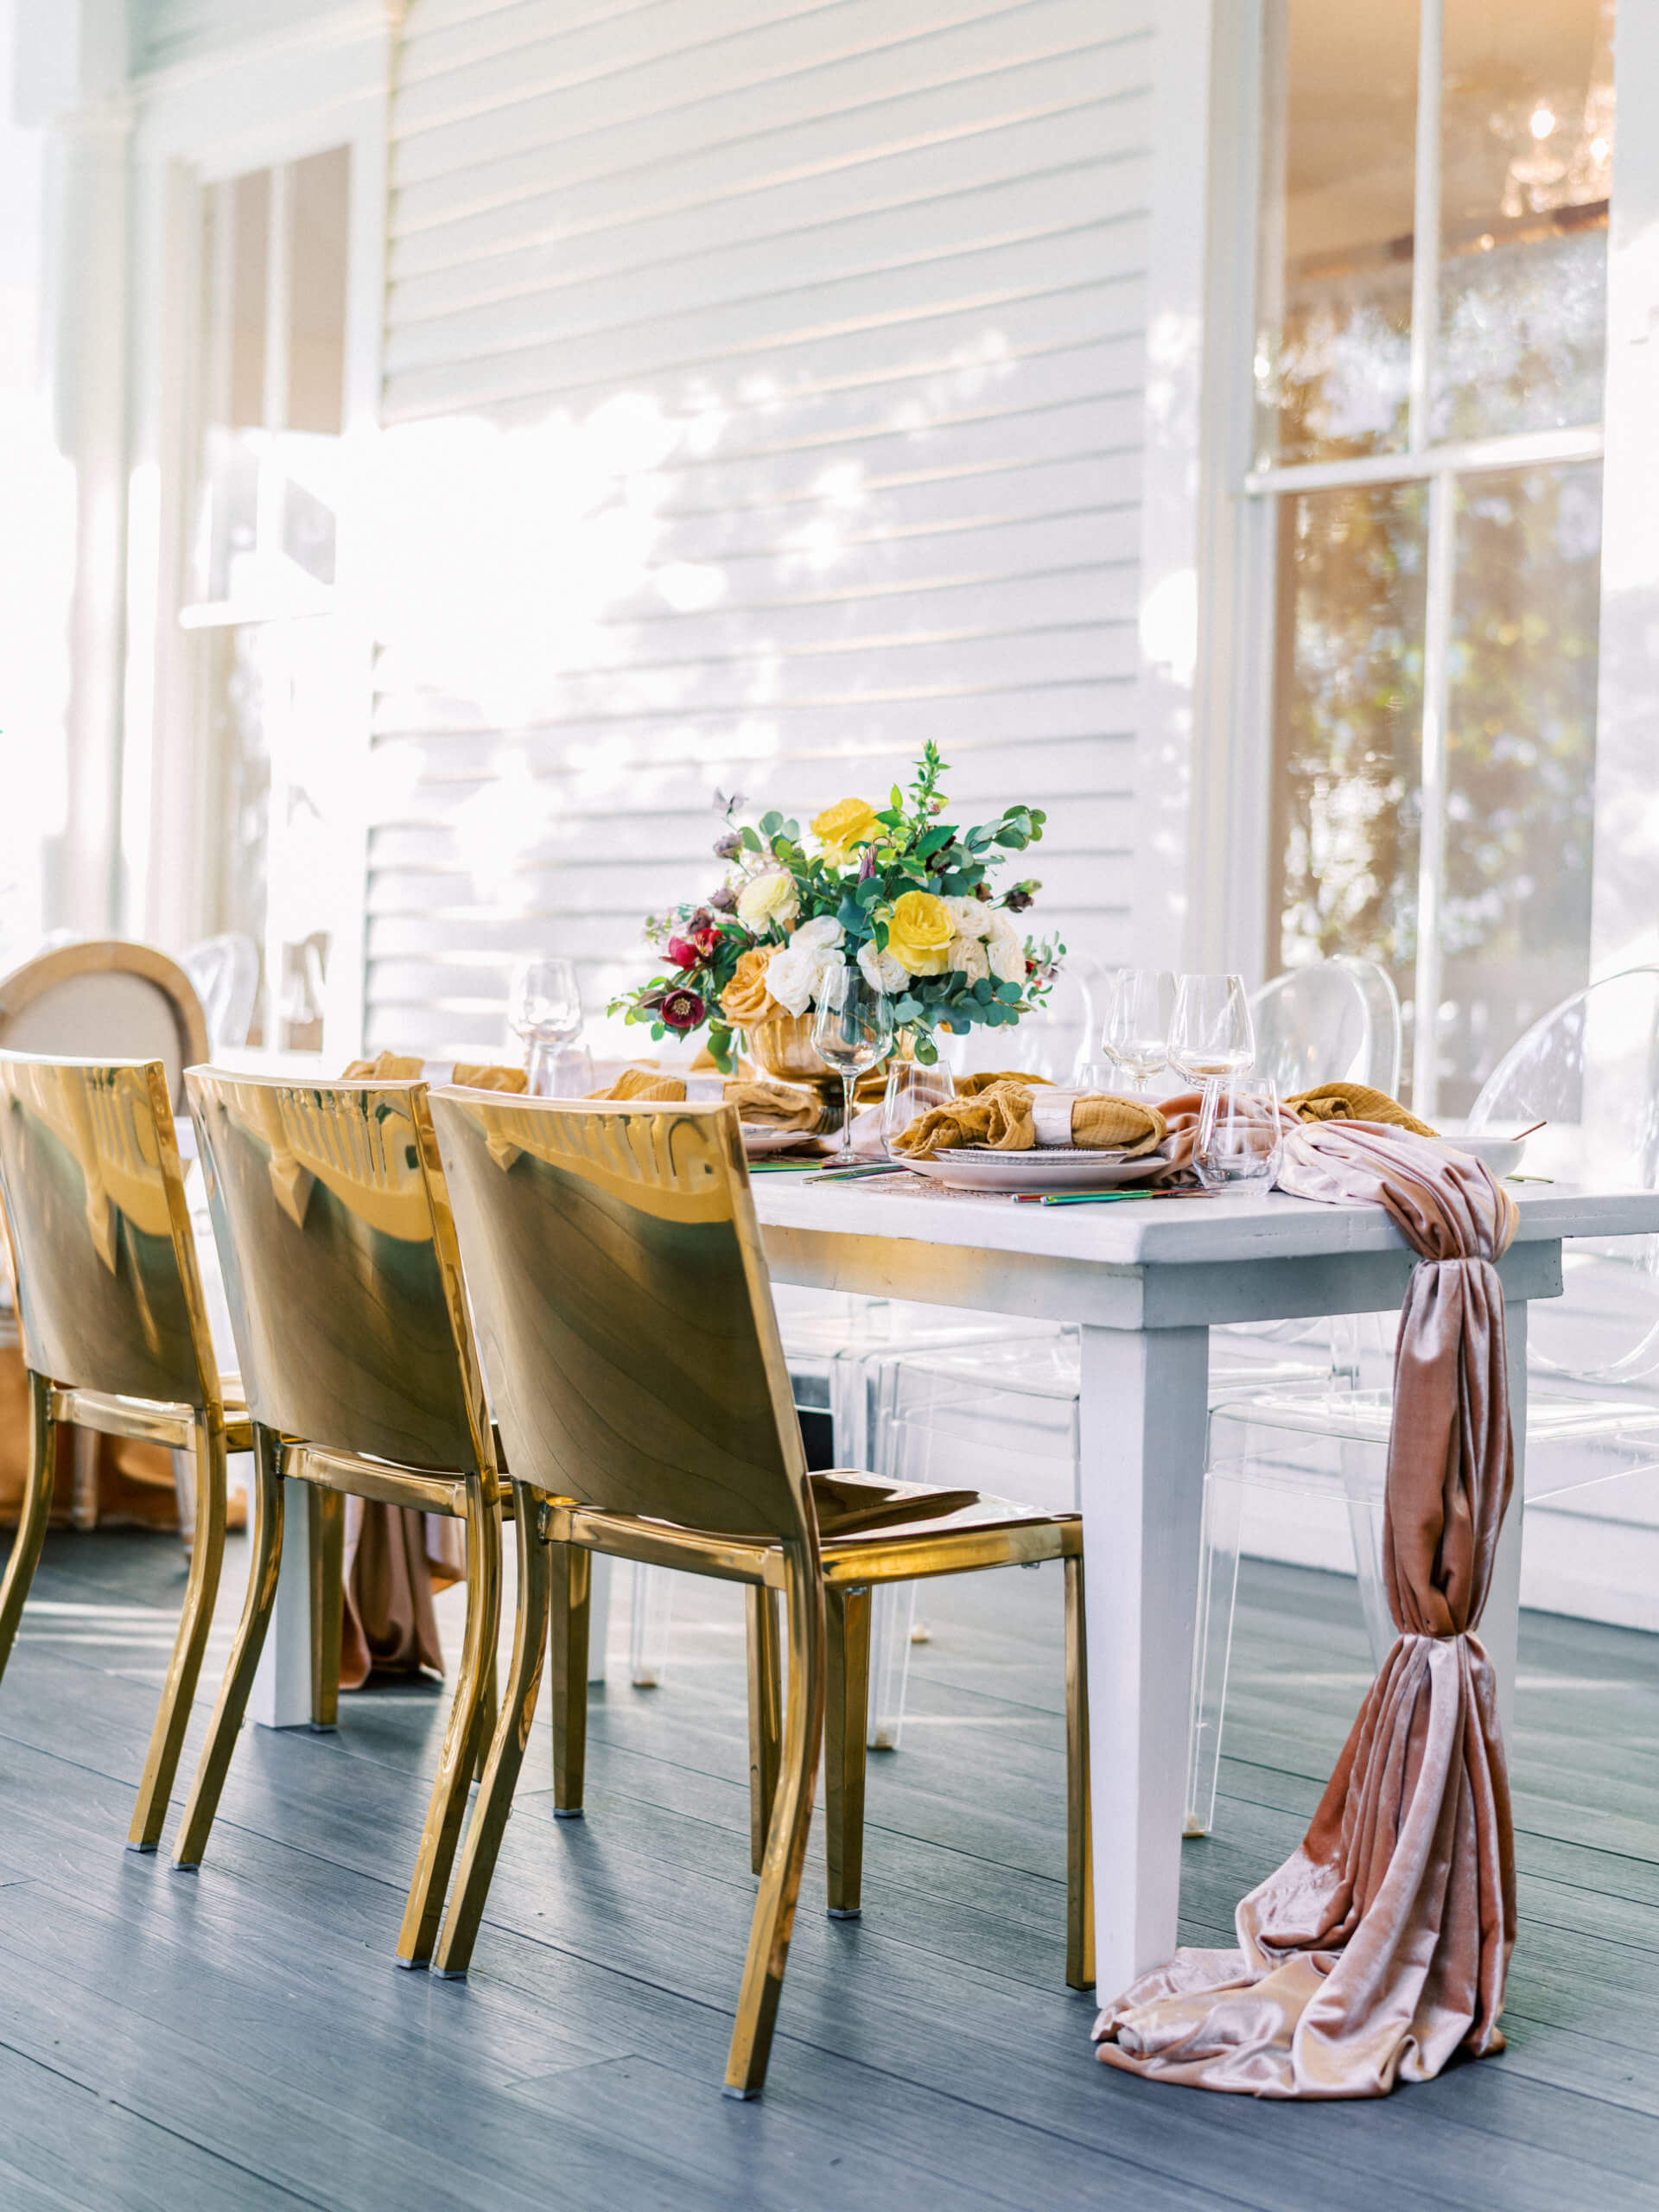 BSE-About-AllanHouse-Tablescape